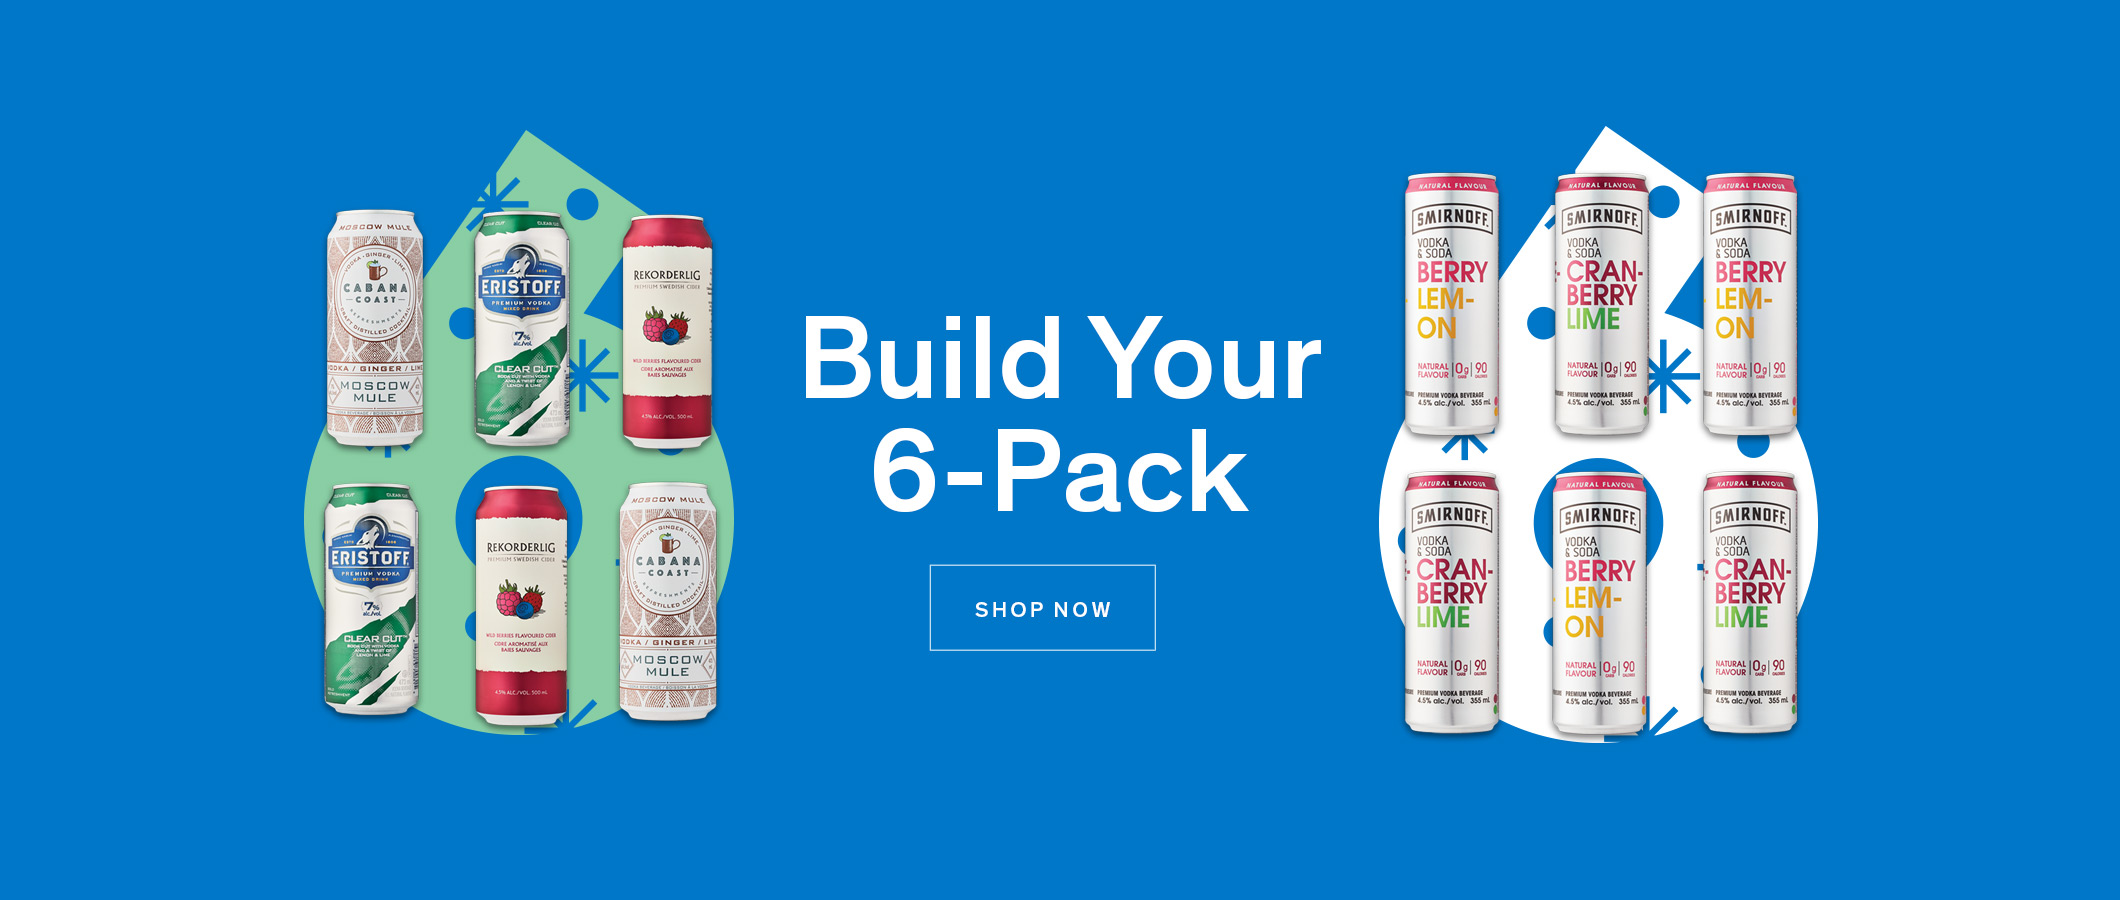 Build Your Holiday 6-Pack. SHOP NOW